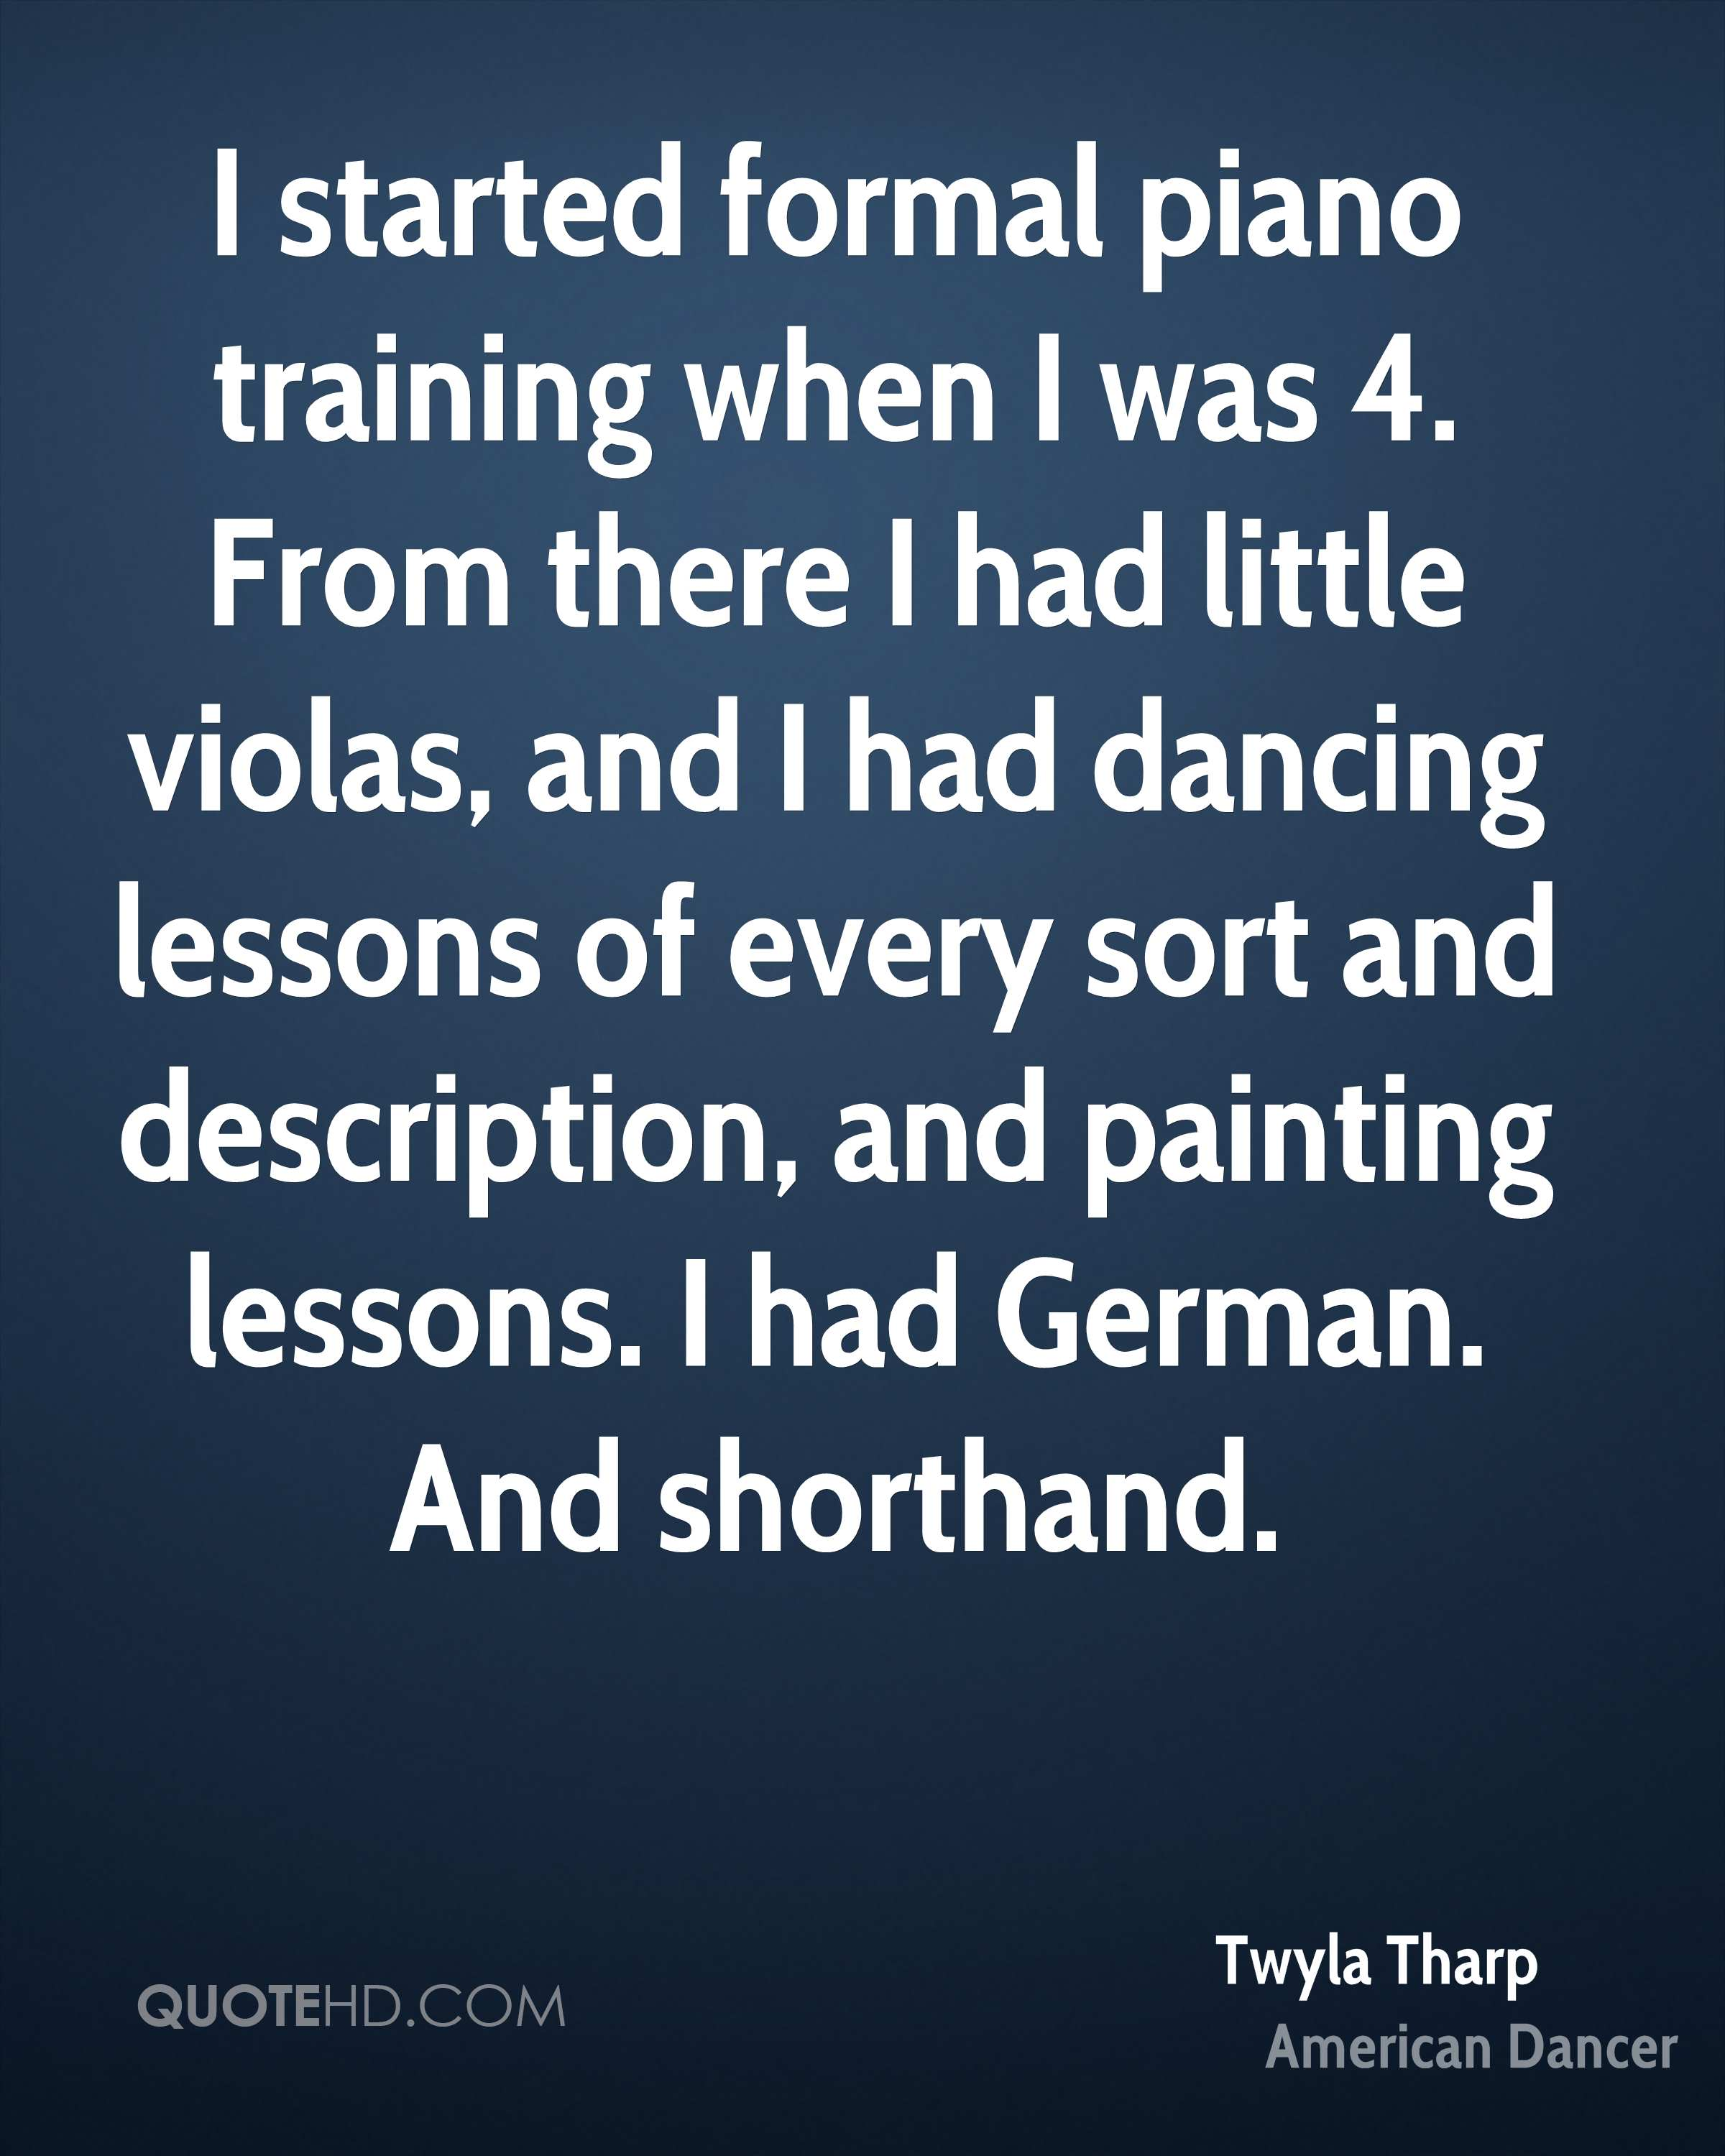 I started formal piano training when I was 4. From there I had little violas, and I had dancing lessons of every sort and description, and painting lessons. I had German. And shorthand.